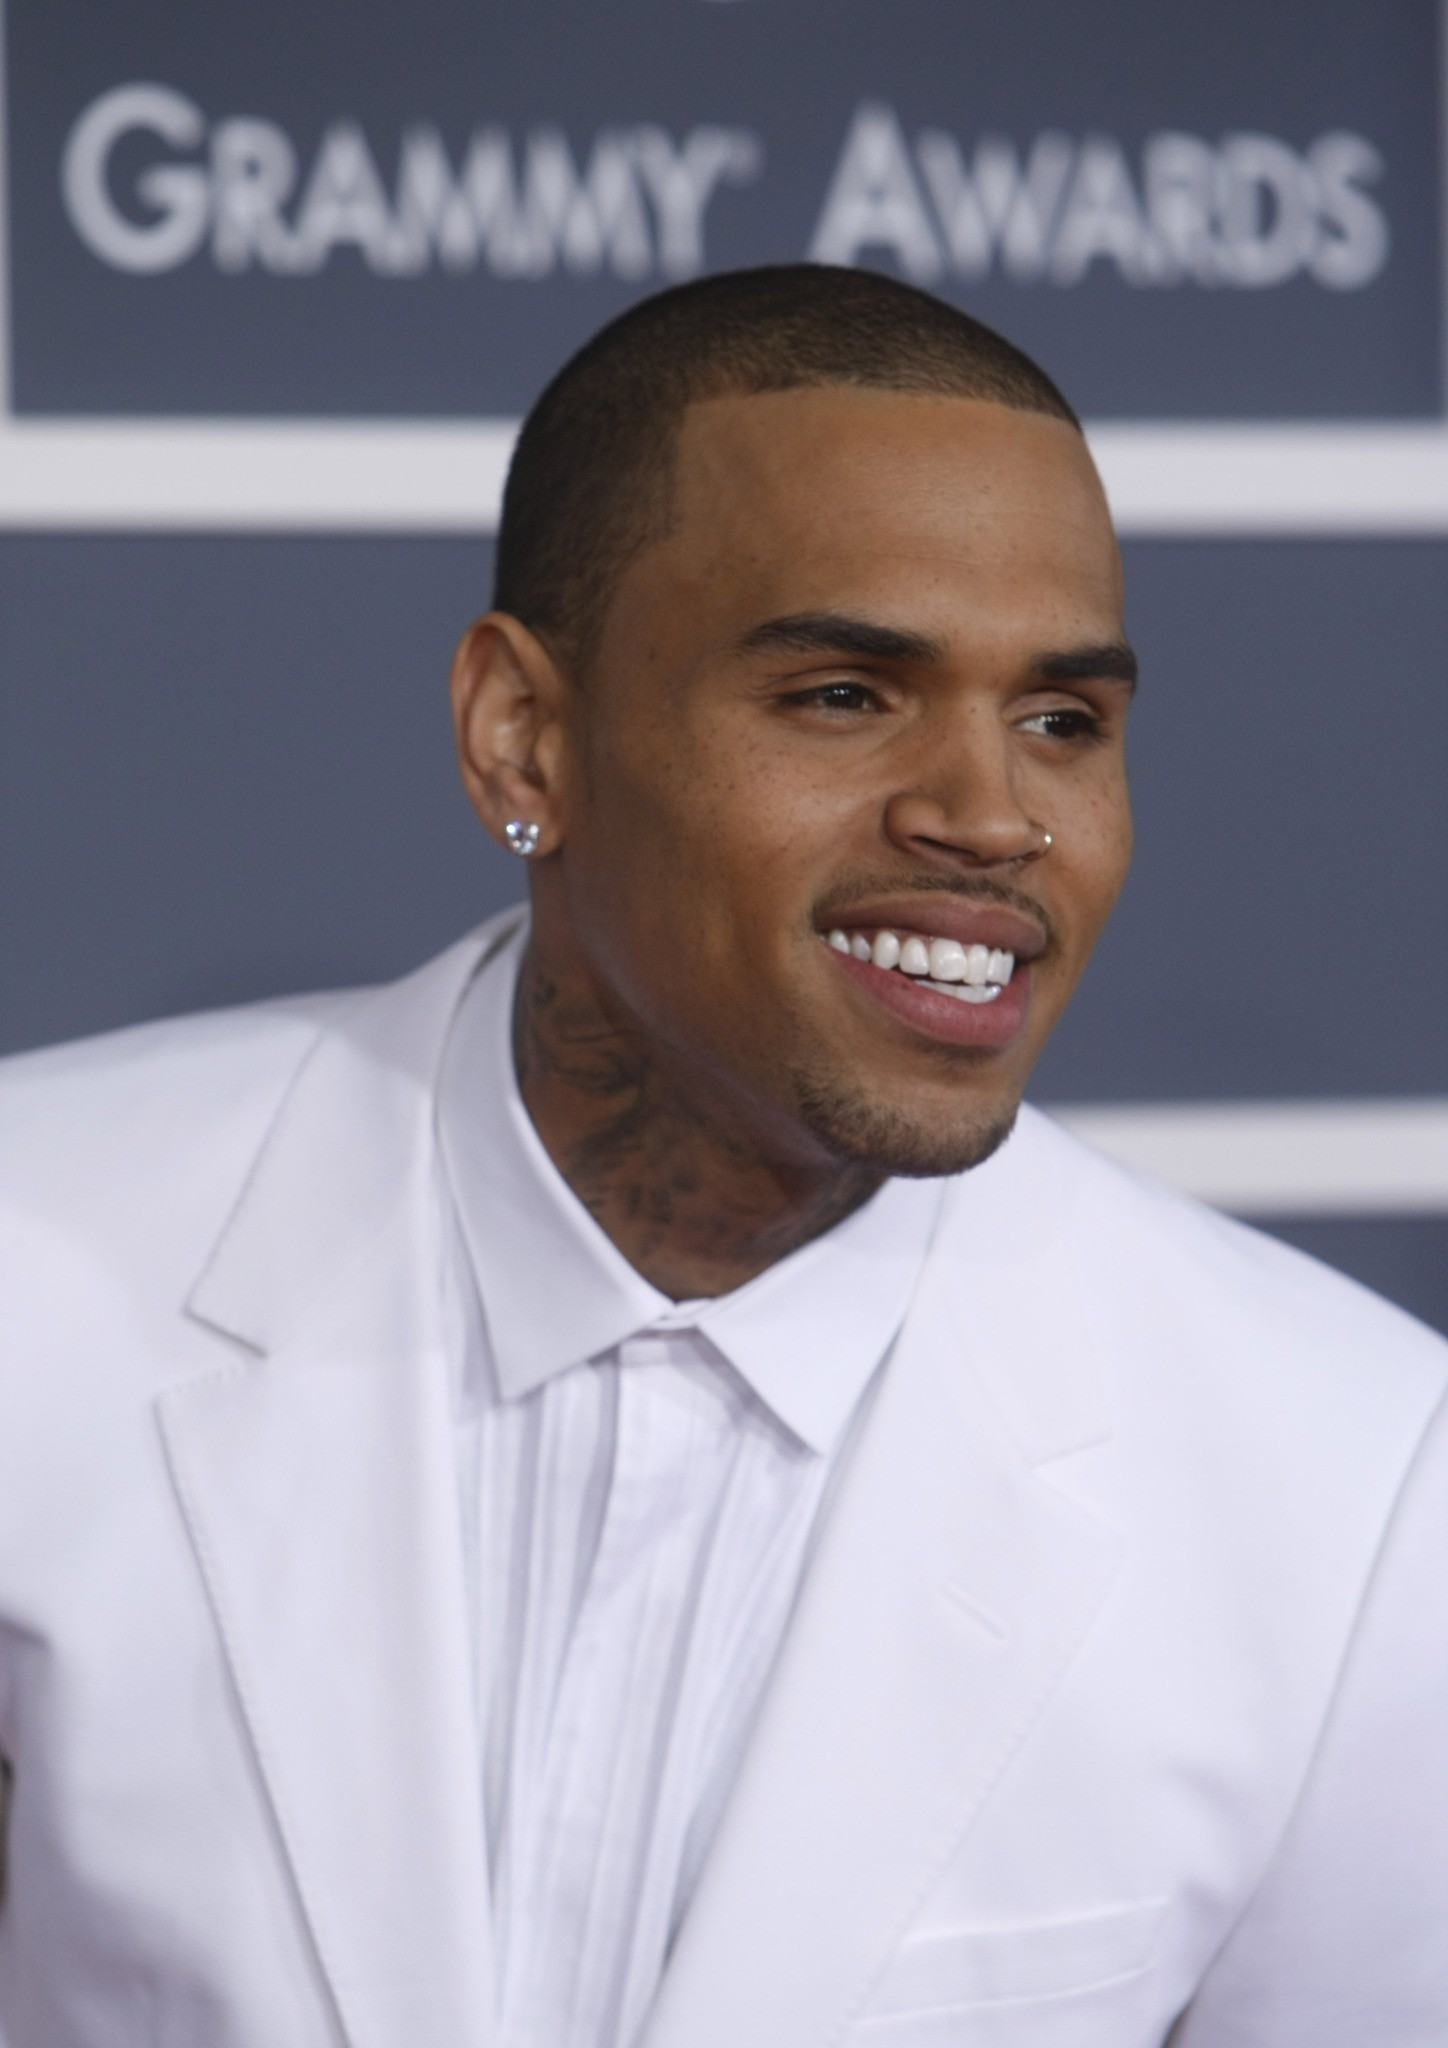 Chris Brown: Life in pictures - Daily Press